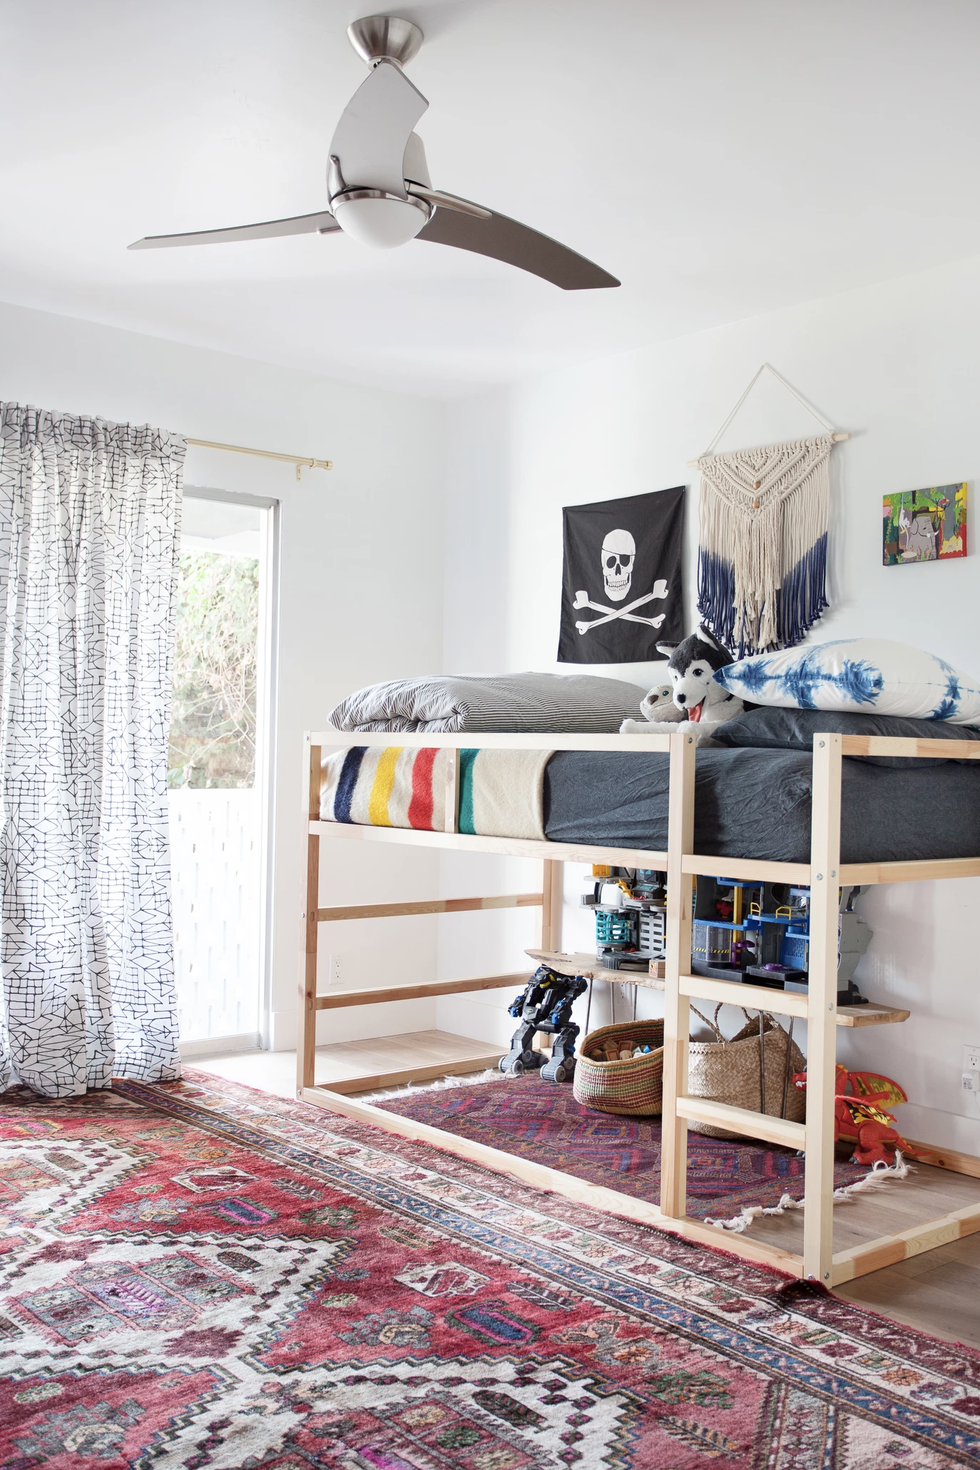 Space under a bunk bed can be utilized for any sort of toy storage! You can either use it as a home for toys, or turn it into a play area where toys are also stored! Via:  House Beautiful